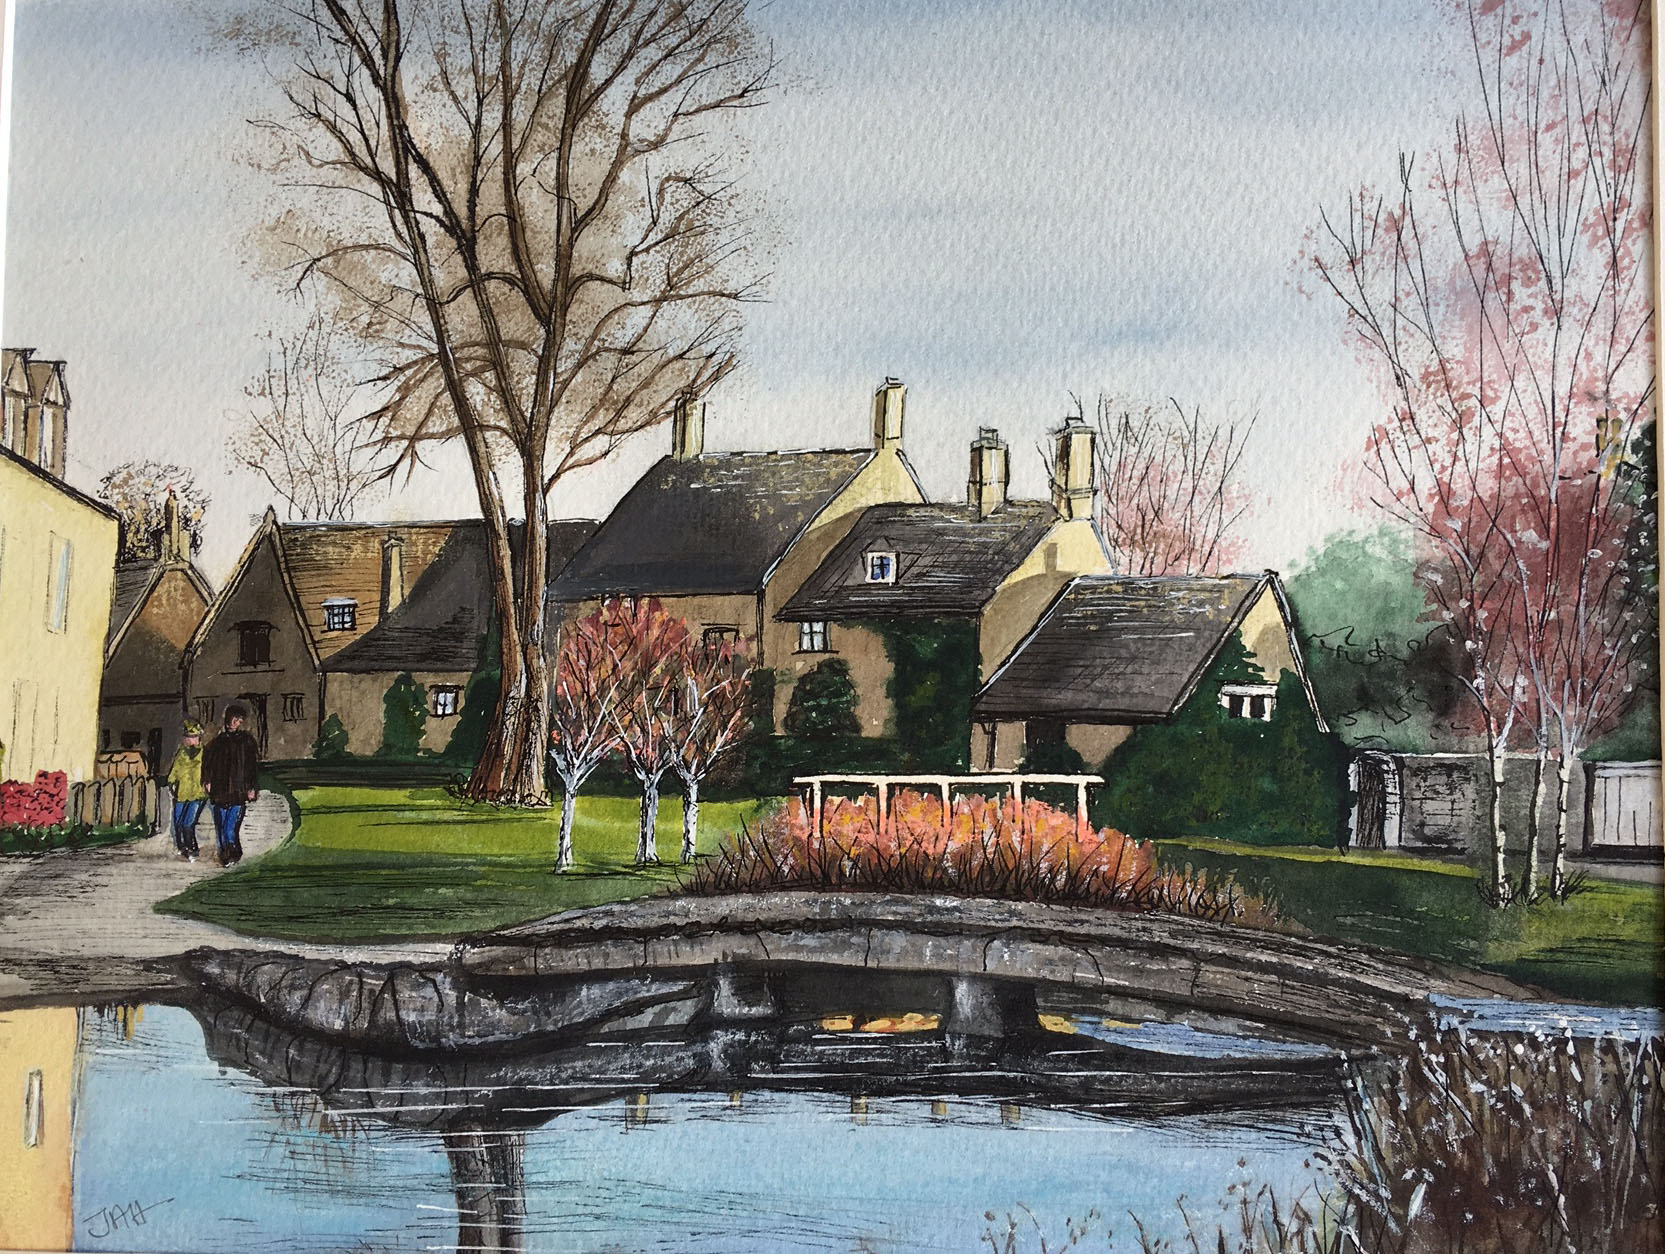 Lower Slaughter, evening. Giclee print and cards available.